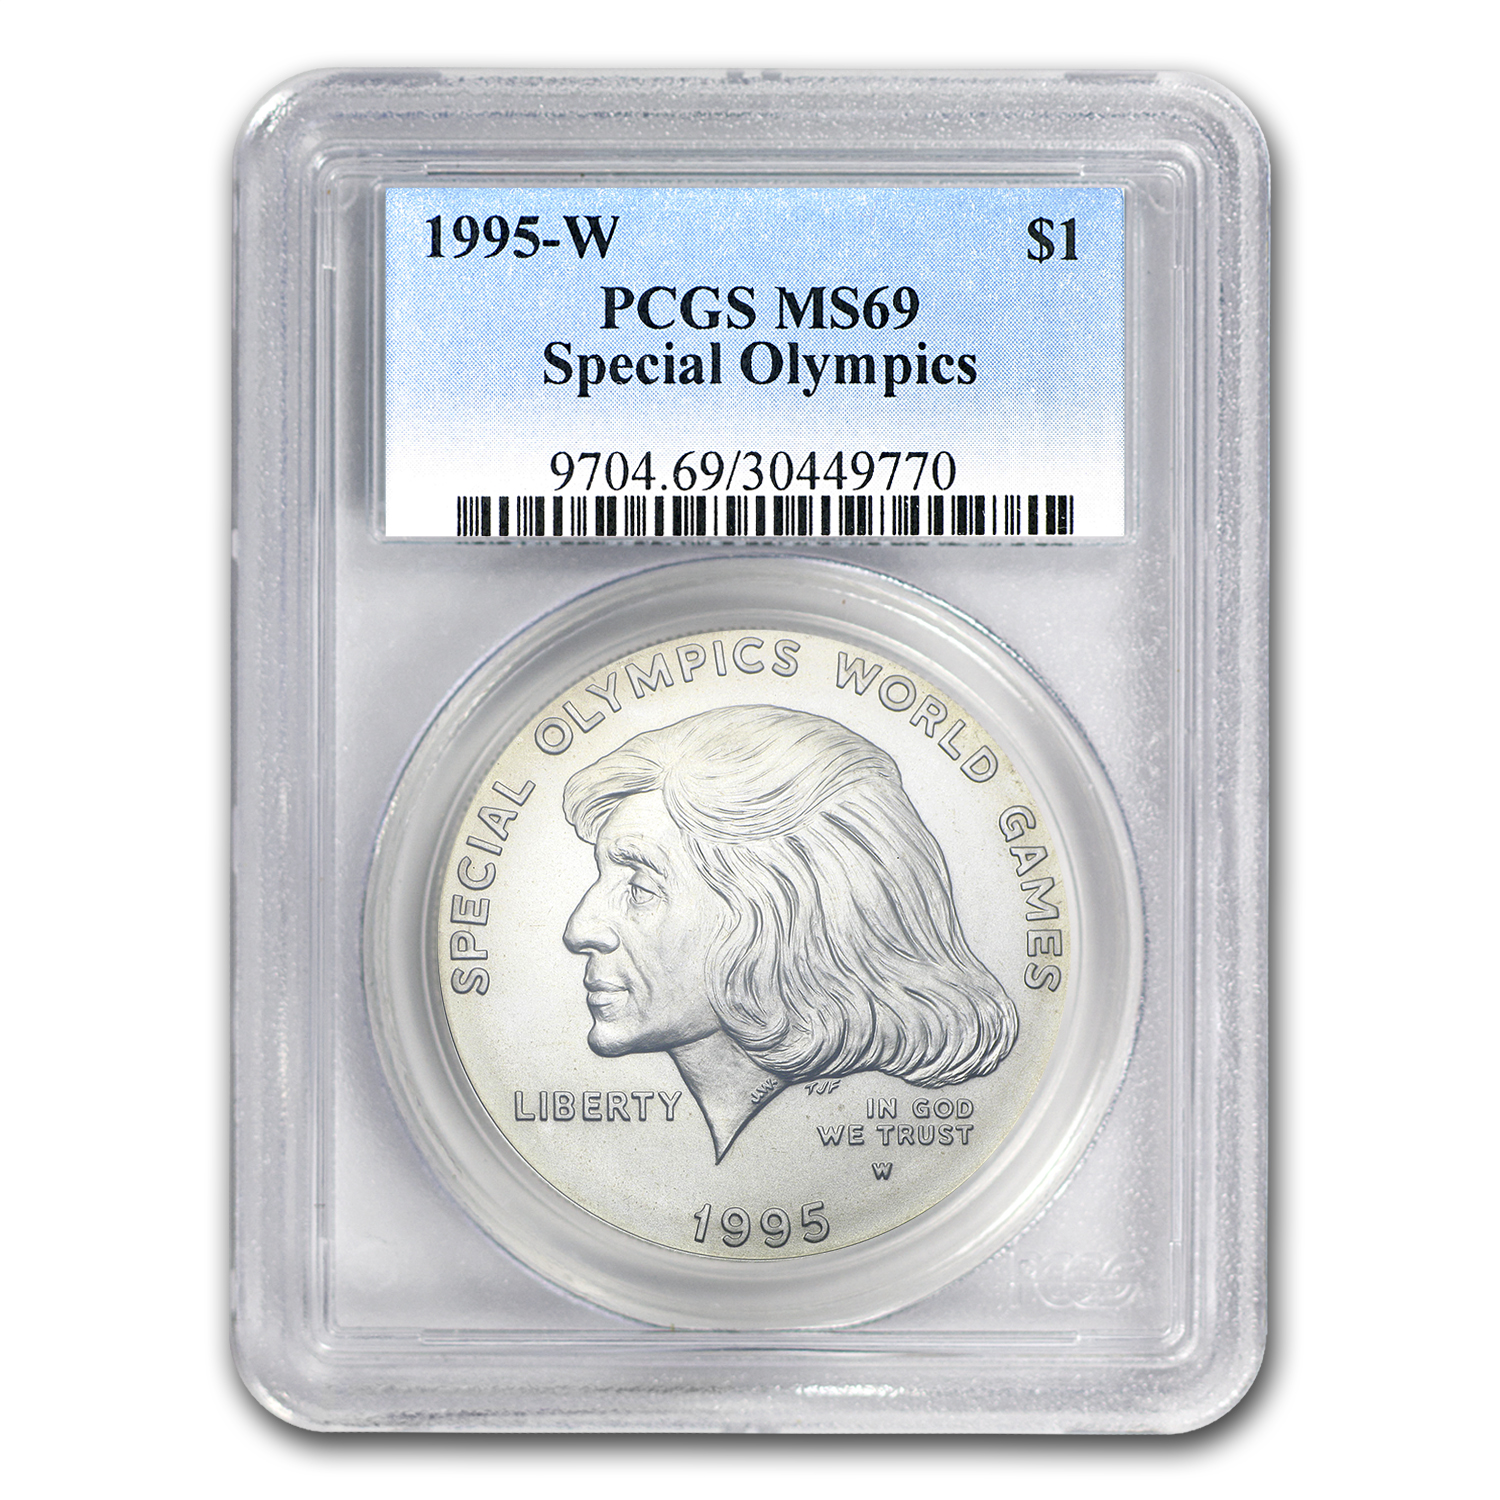 1995-W Special Olympics $1 Silver Commem MS-69 PCGS